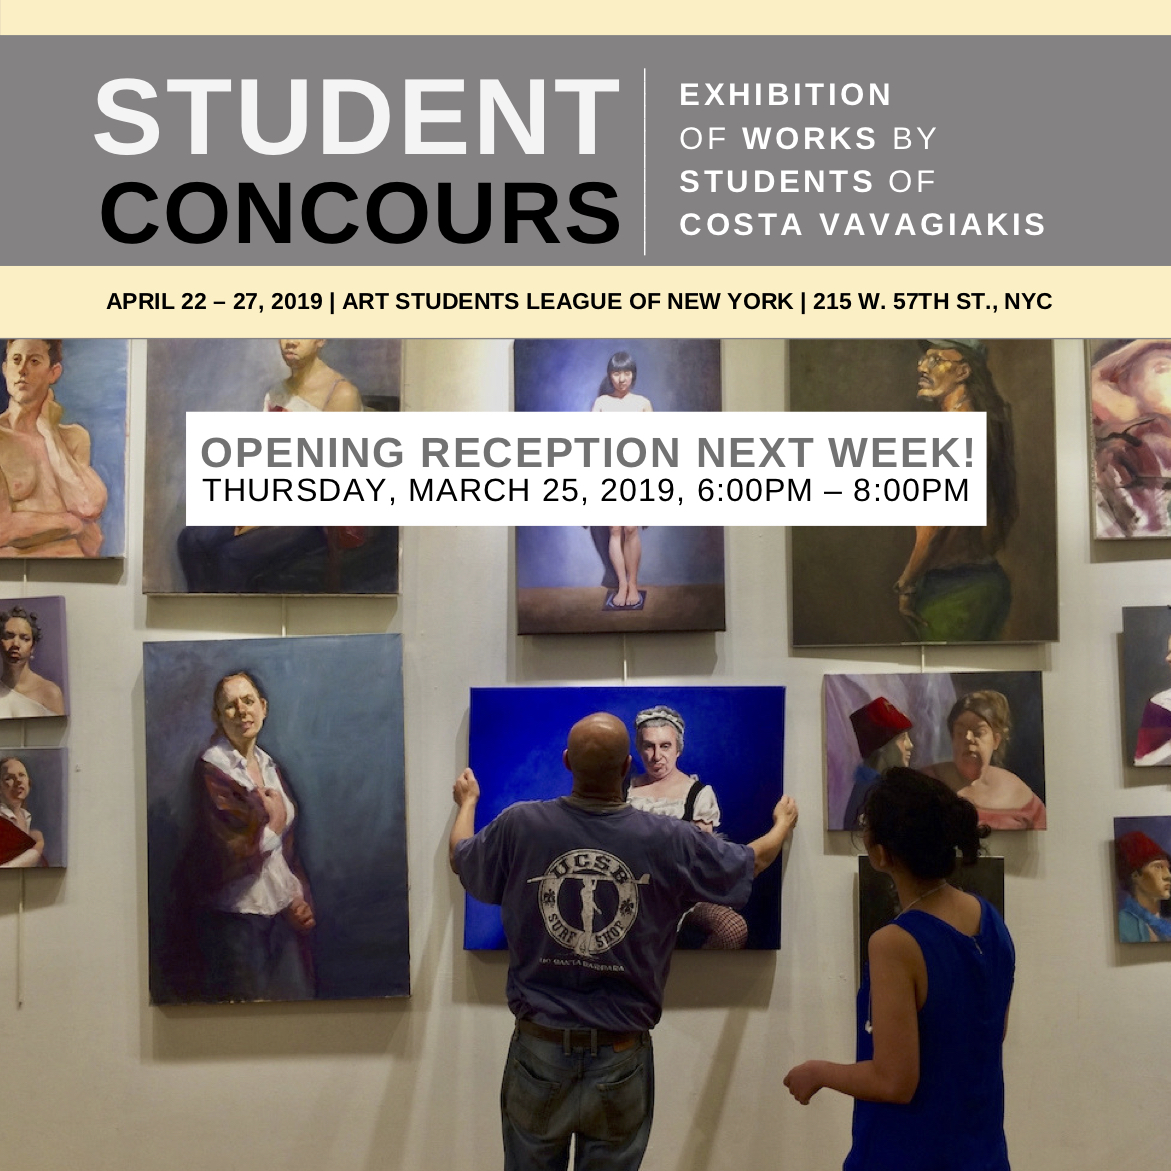 Student Concours 2019